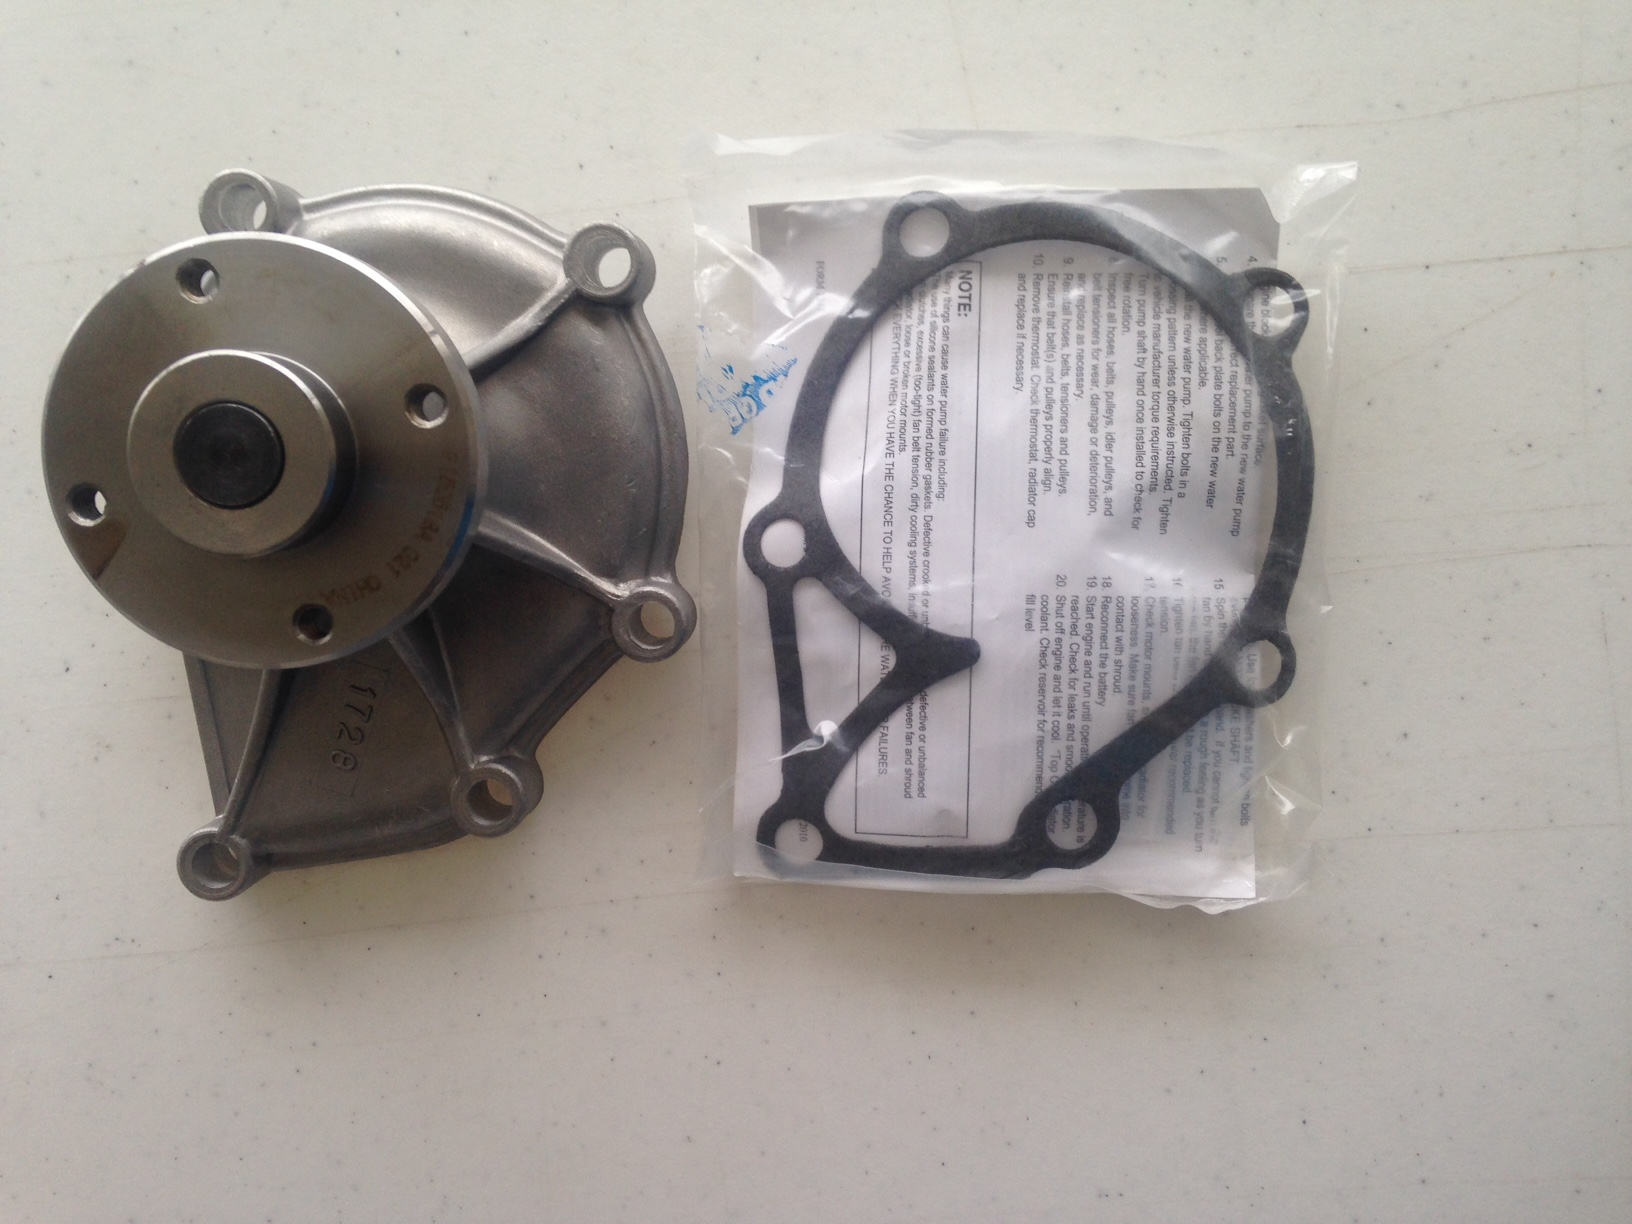 Iseki Water Pump WP-021 W/Gasket See Description Below